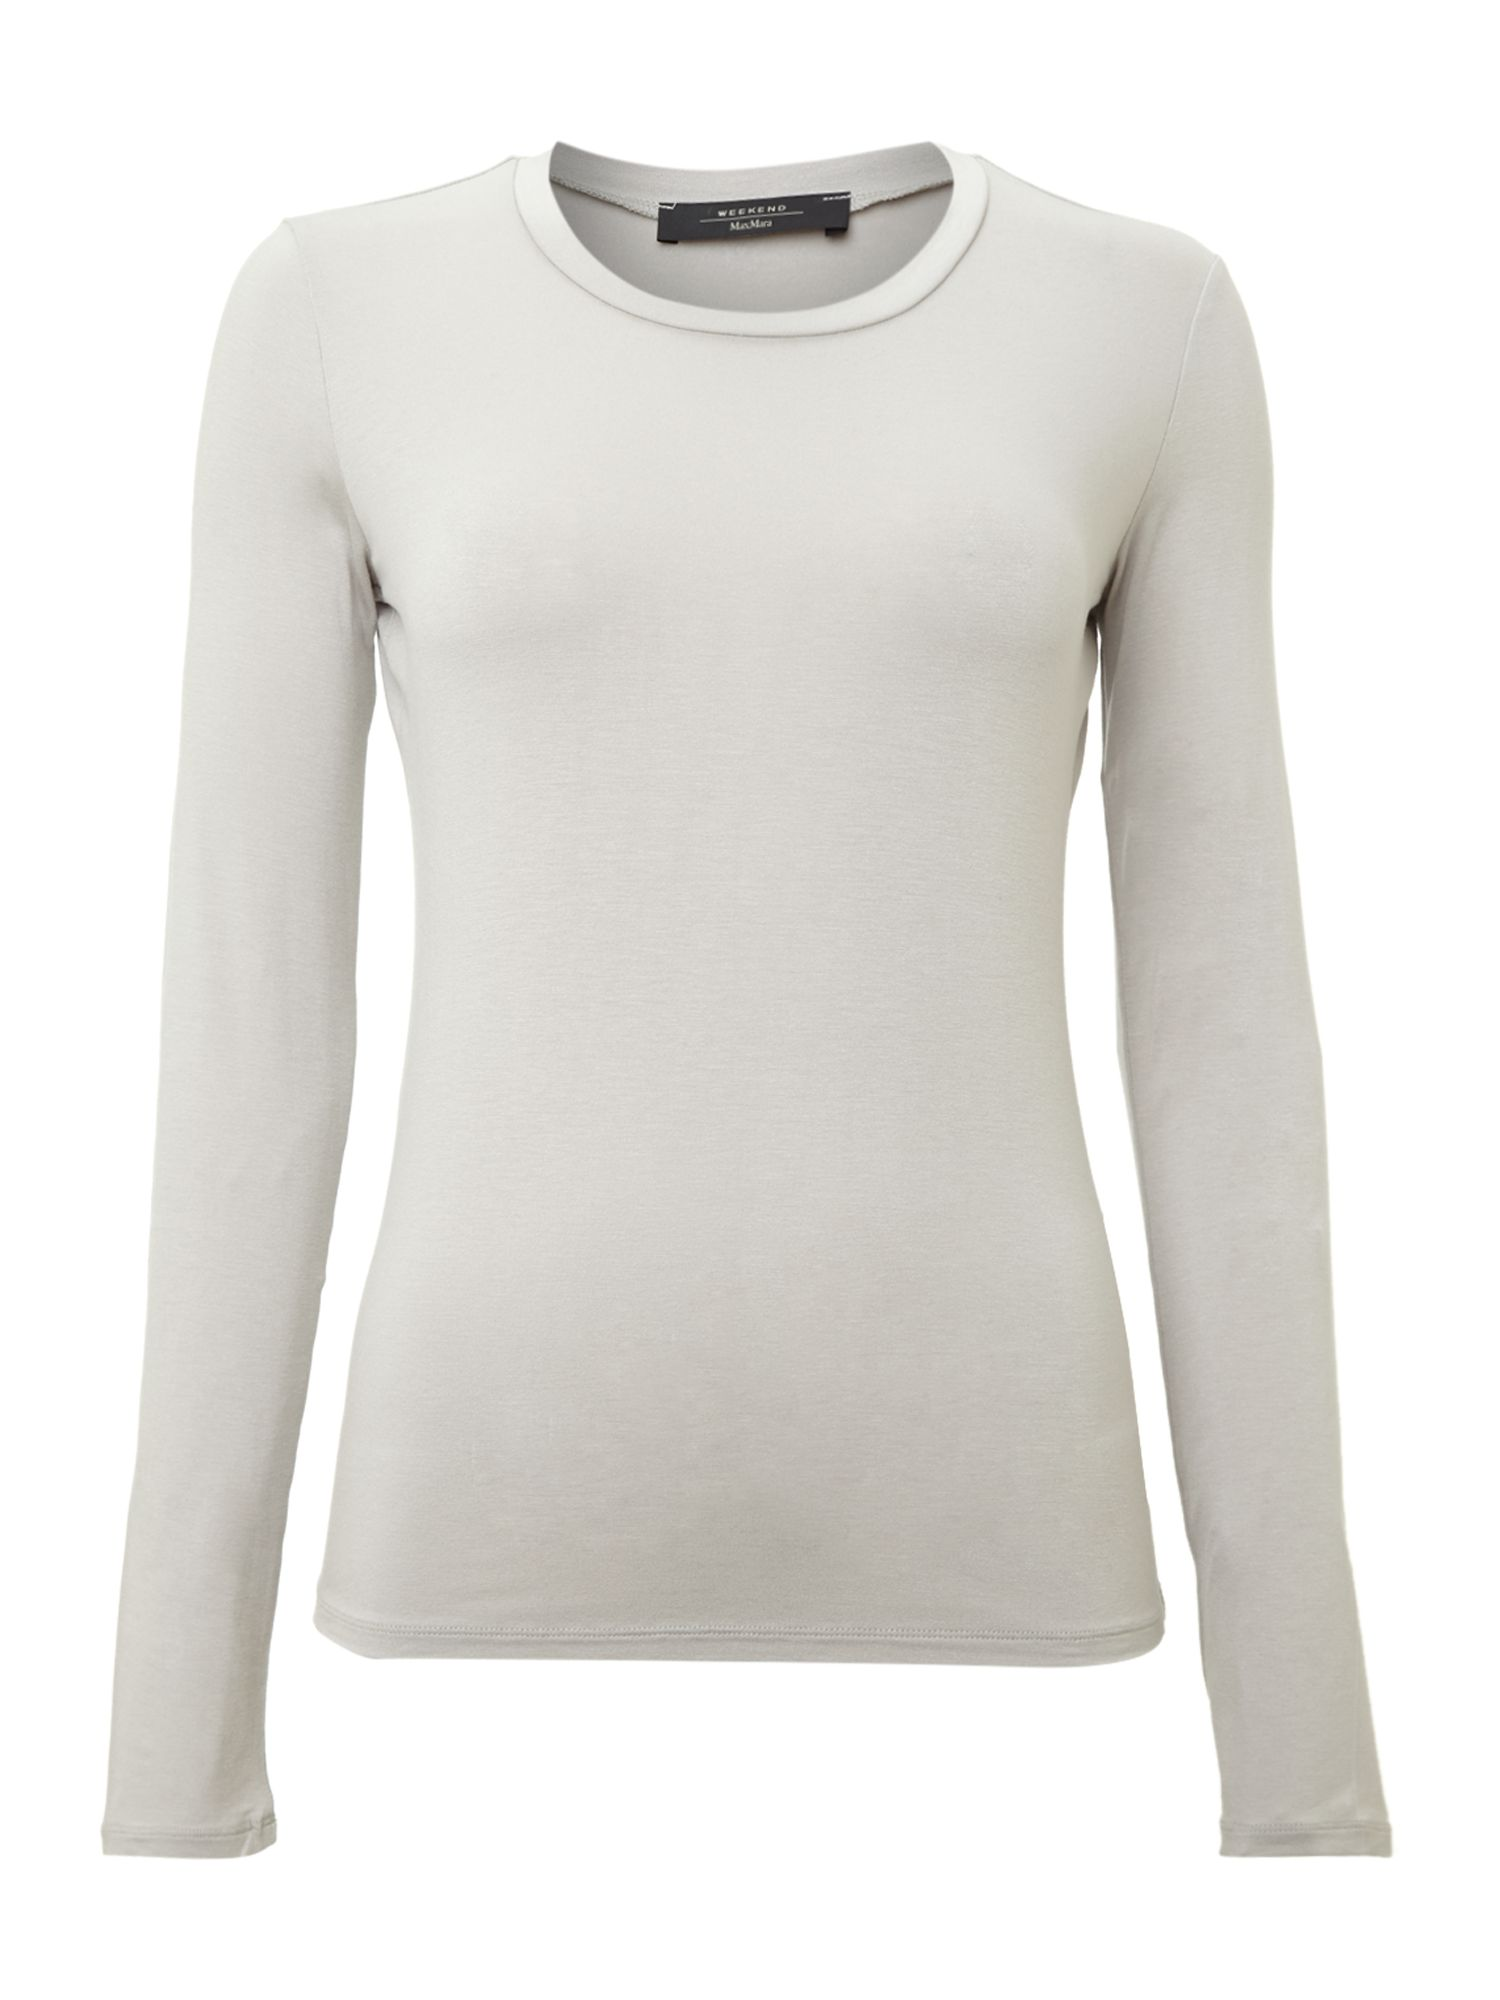 Multie long sleeved round neck top